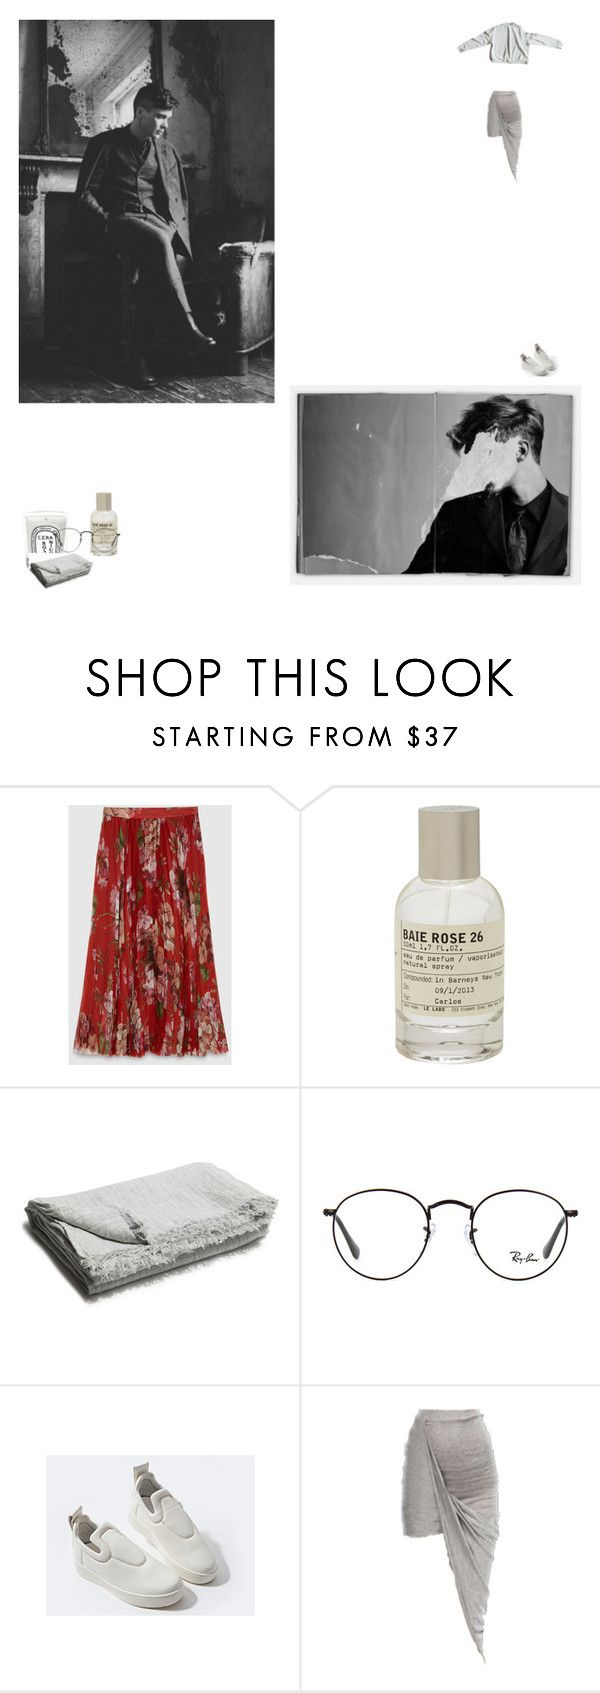 """""""L O"""" by newageconstellation ❤ liked on Polyvore featuring Gucci, Le Labo, Murphy, Diptyque and Ray-Ban"""